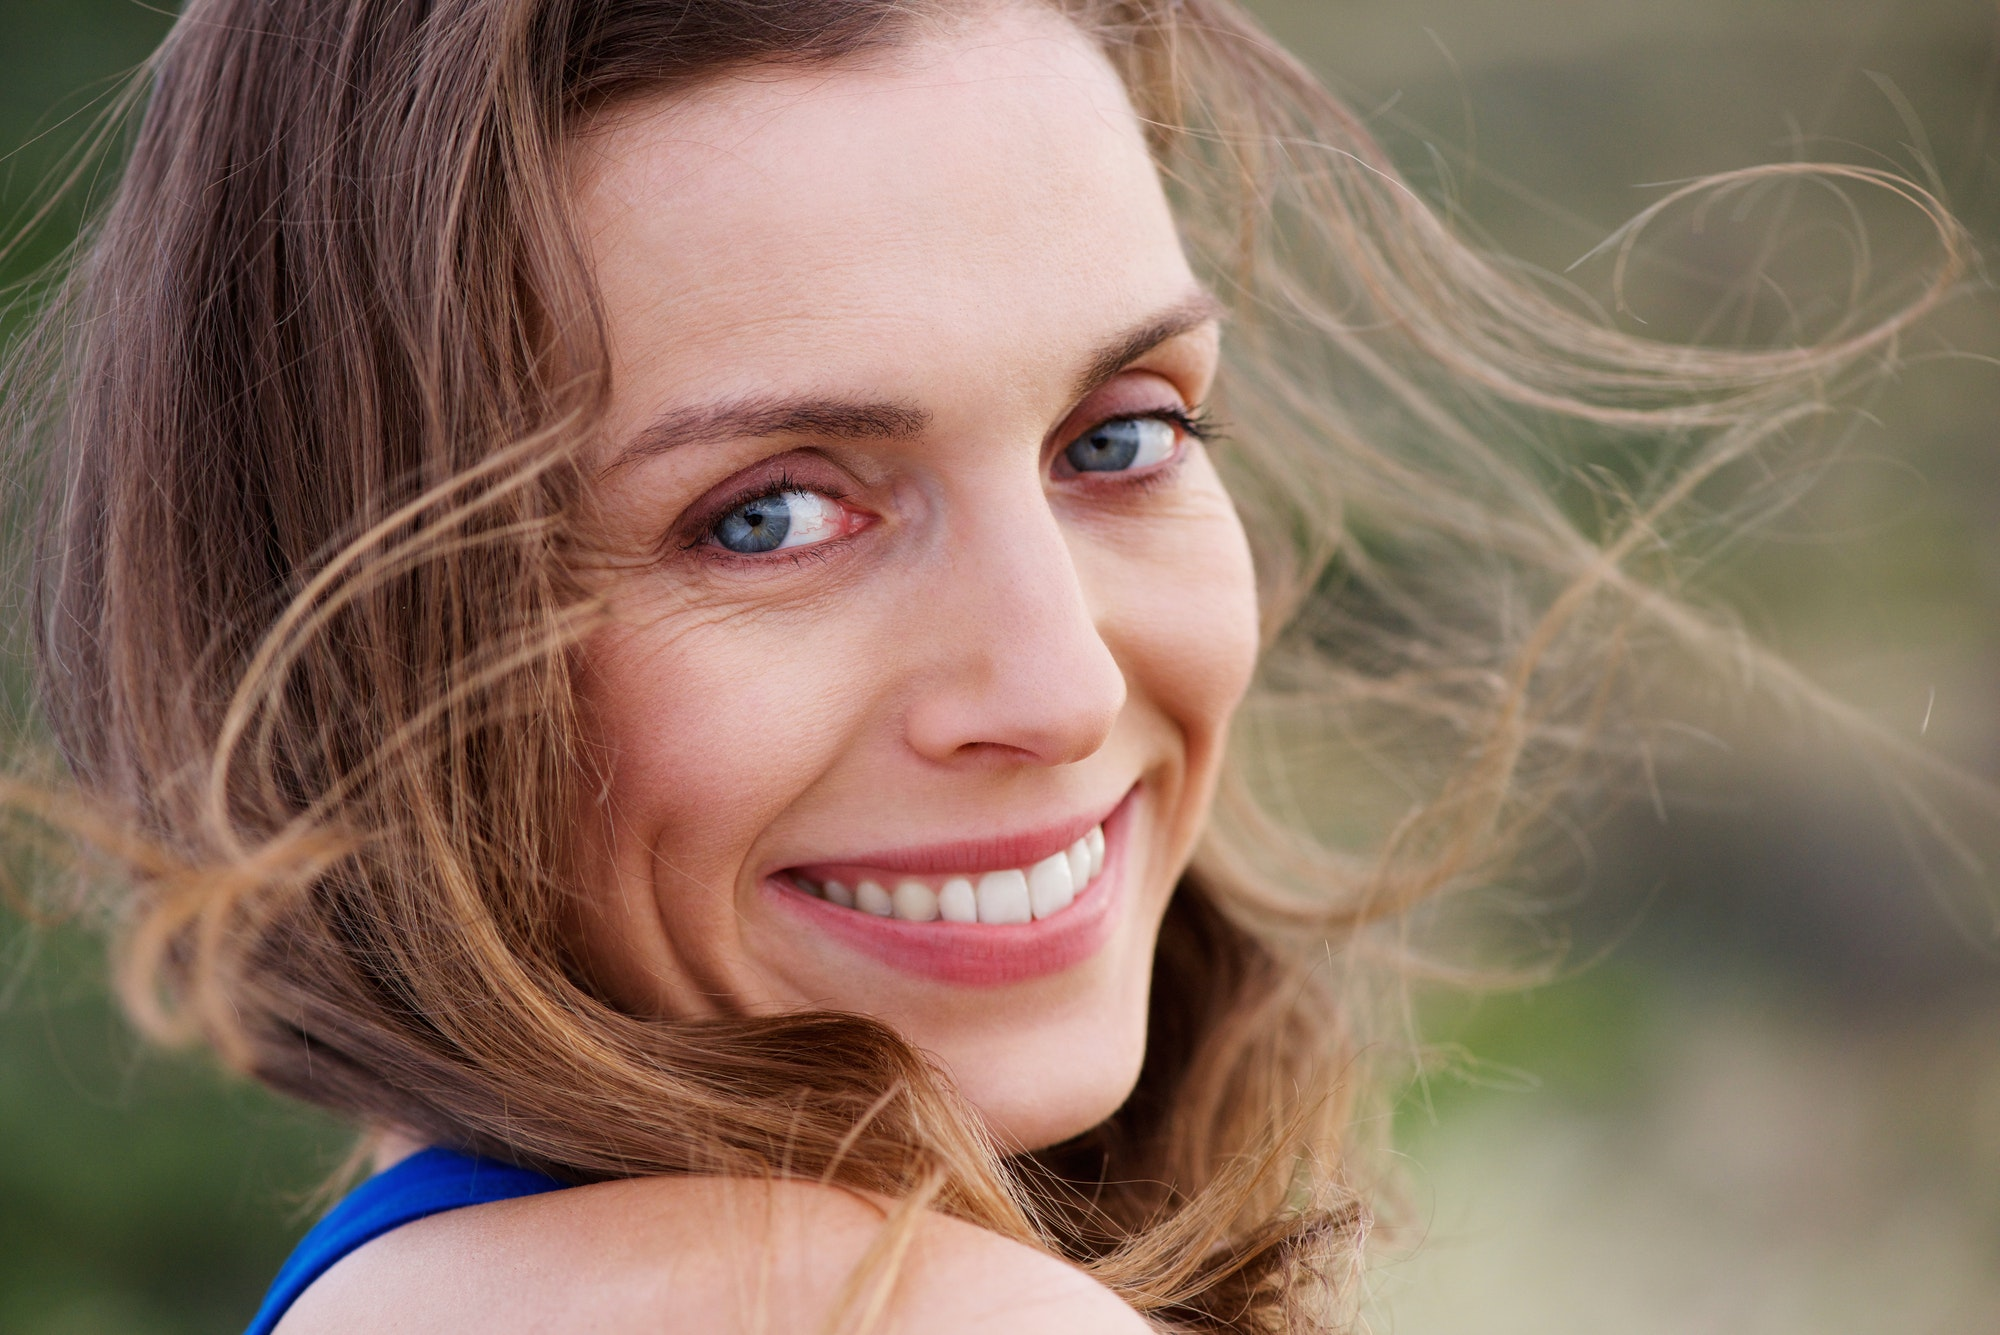 Healthy smiling woman outside